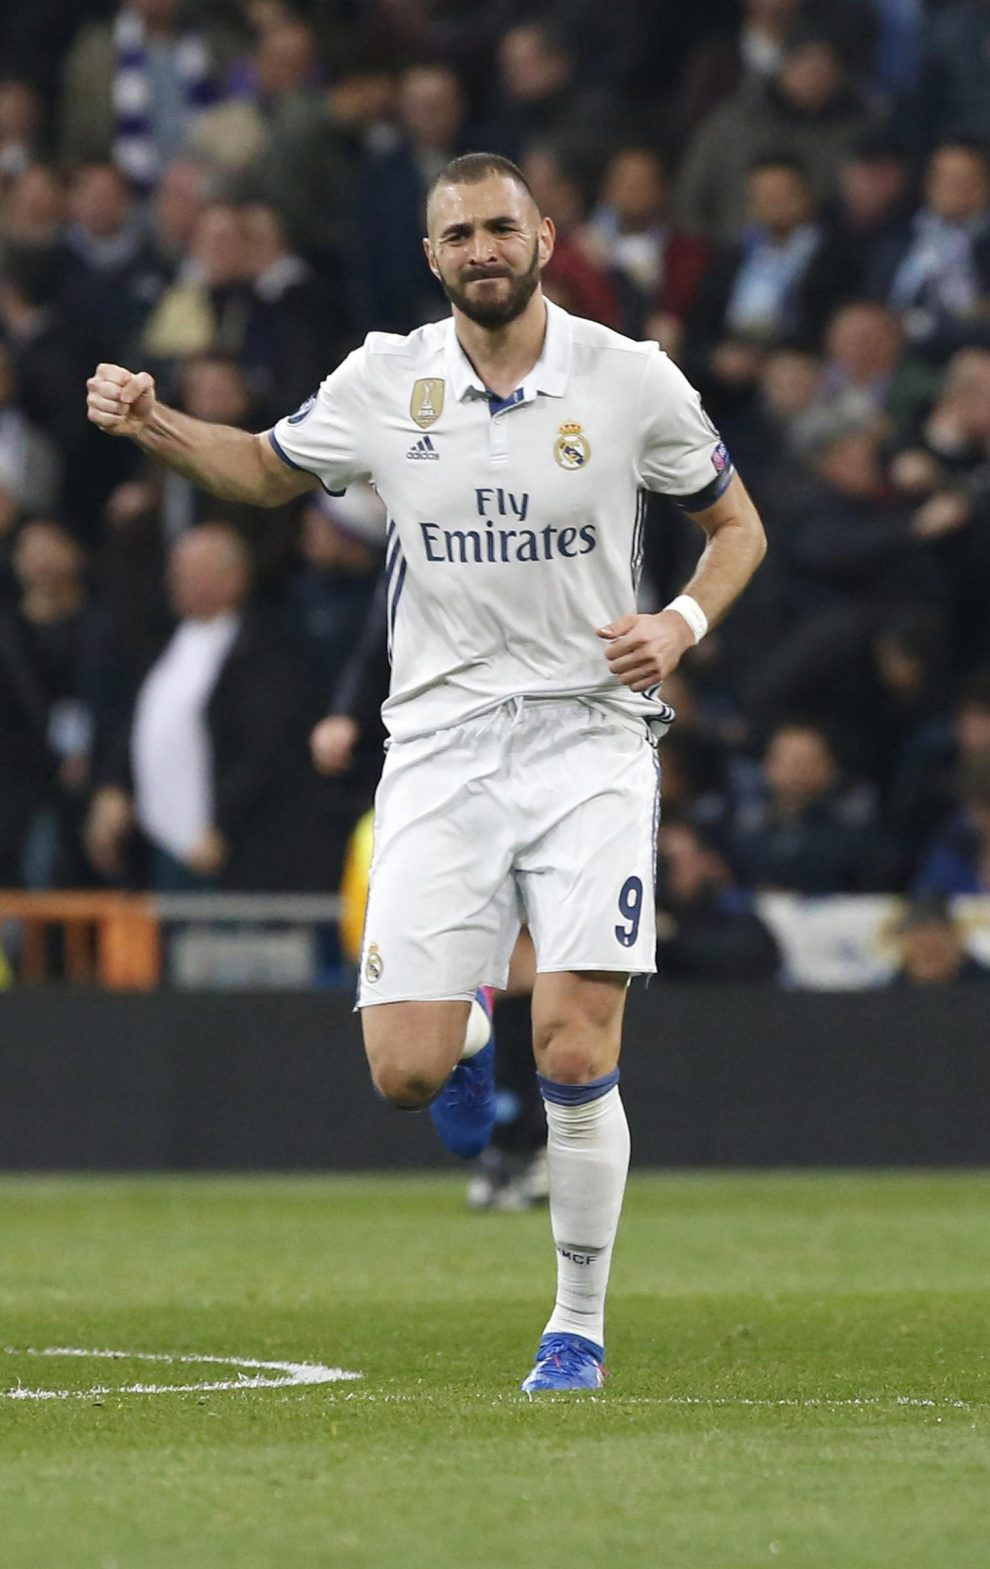 Real Madrid's French striker Karim Benzema jubilates a goal, the first against Napoli, during their UEFA Champions League round of 16 match at Santiago Bernabeu stadium in Madrid, Spain, 15 February 2017. EFE/Kiko Huesca